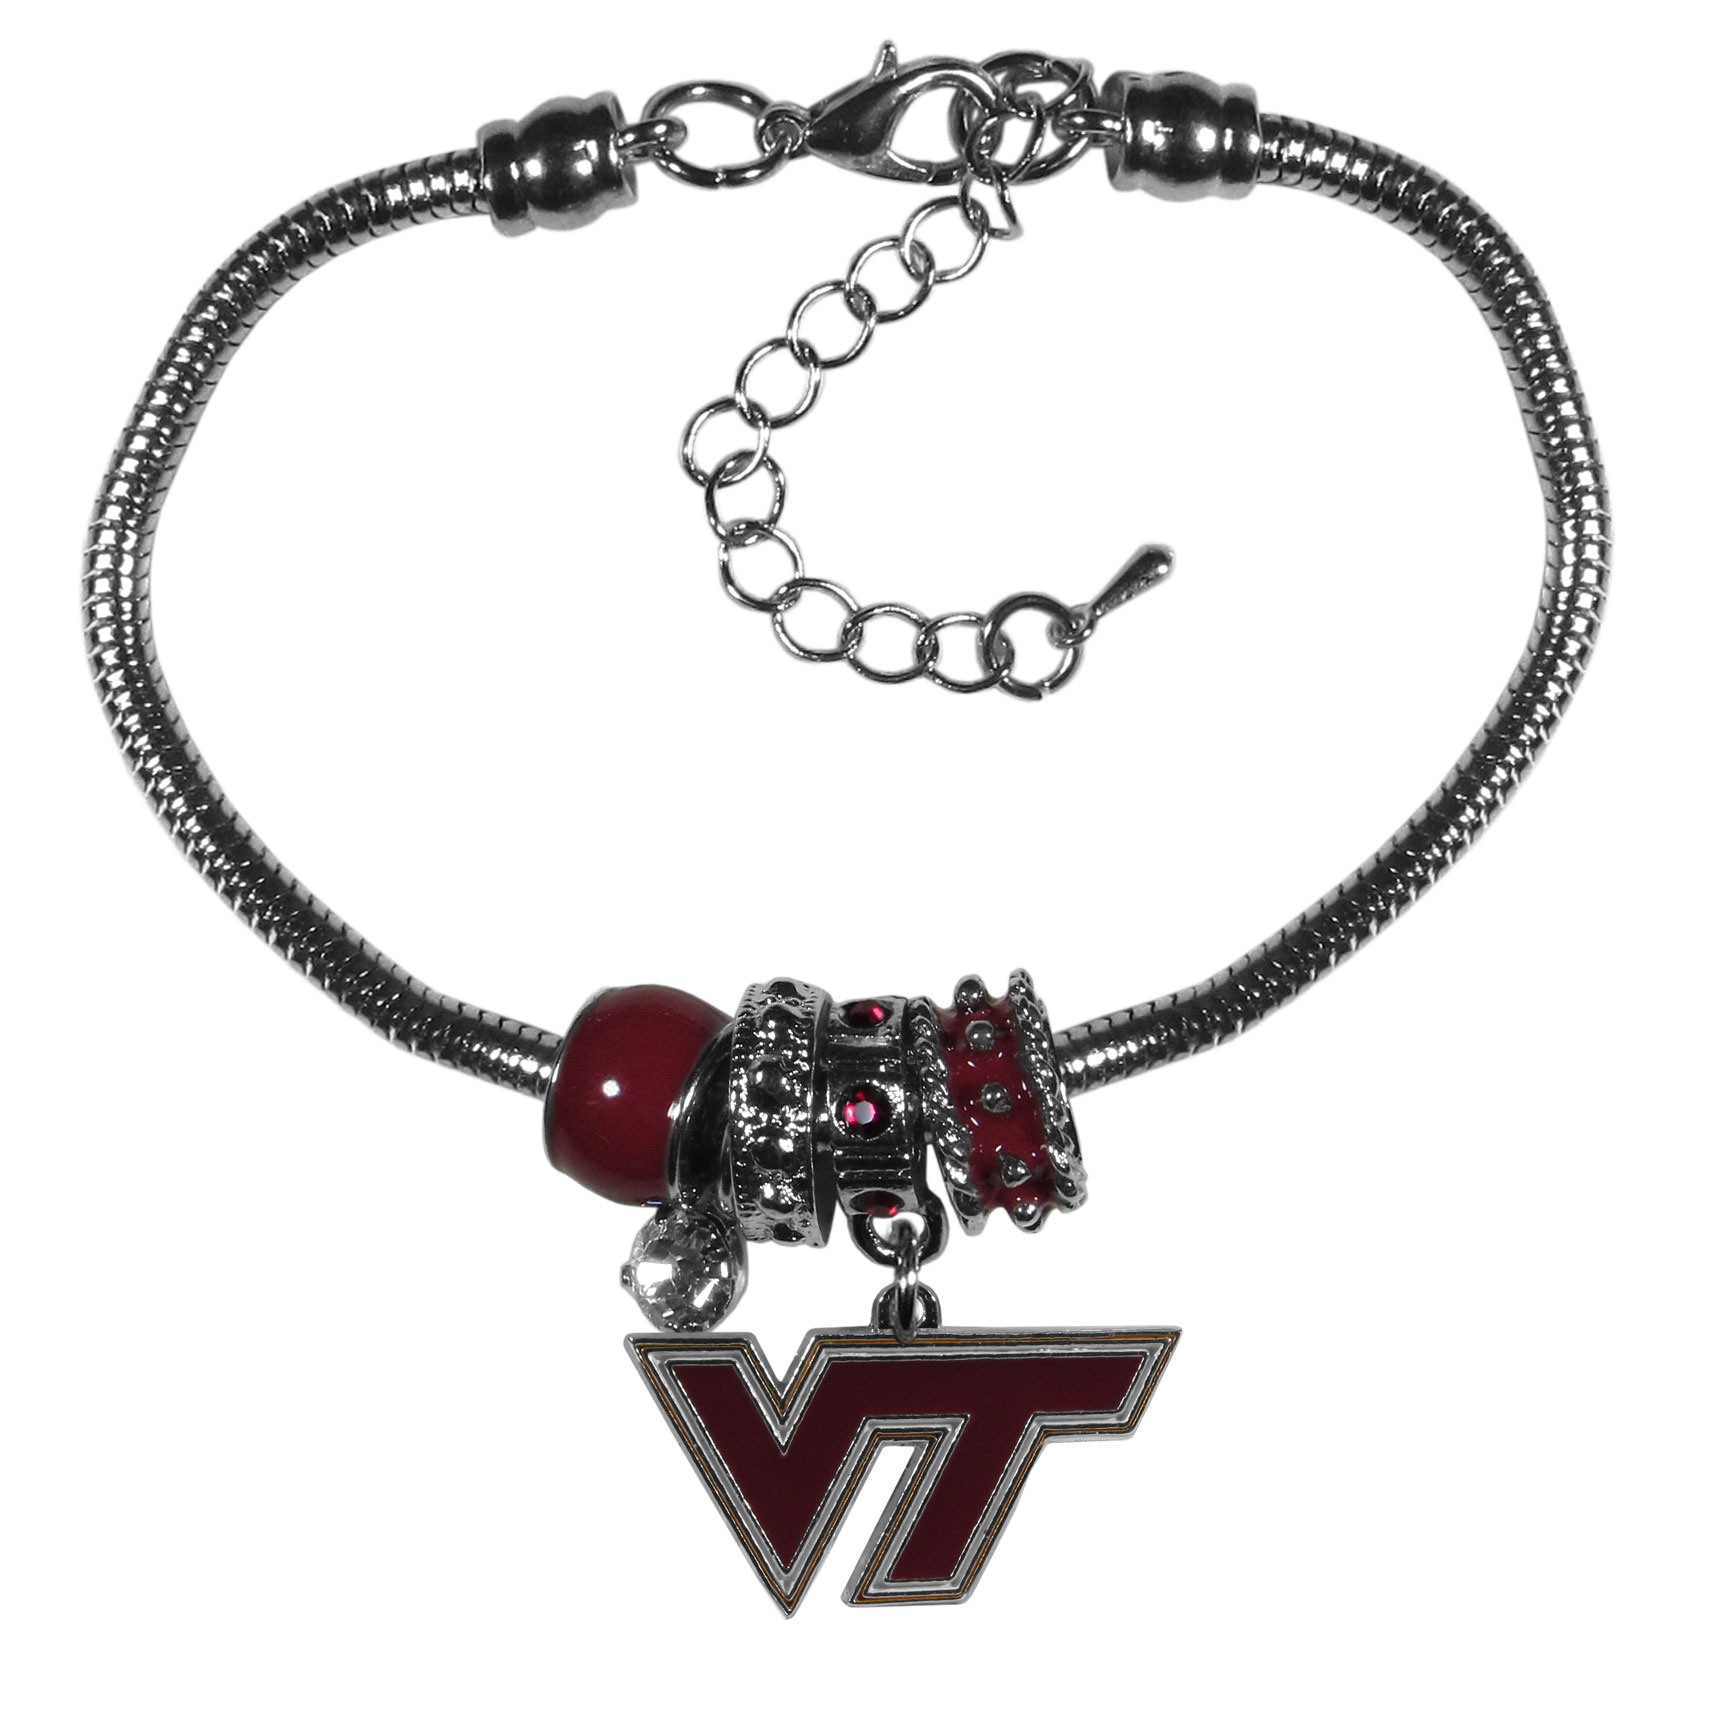 Virginia Tech Hokies Euro Bead Bracelet - We have combined the wildly popular Euro style beads with your favorite team to create our  Virginia Tech Hokies bead bracelet. The 7.5 inch snake chain with 2 inch extender features 4 Euro beads with enameled team colors and rhinestone accents with a high polish, nickel free charm and rhinestone charm. Perfect way to show off your team pride.